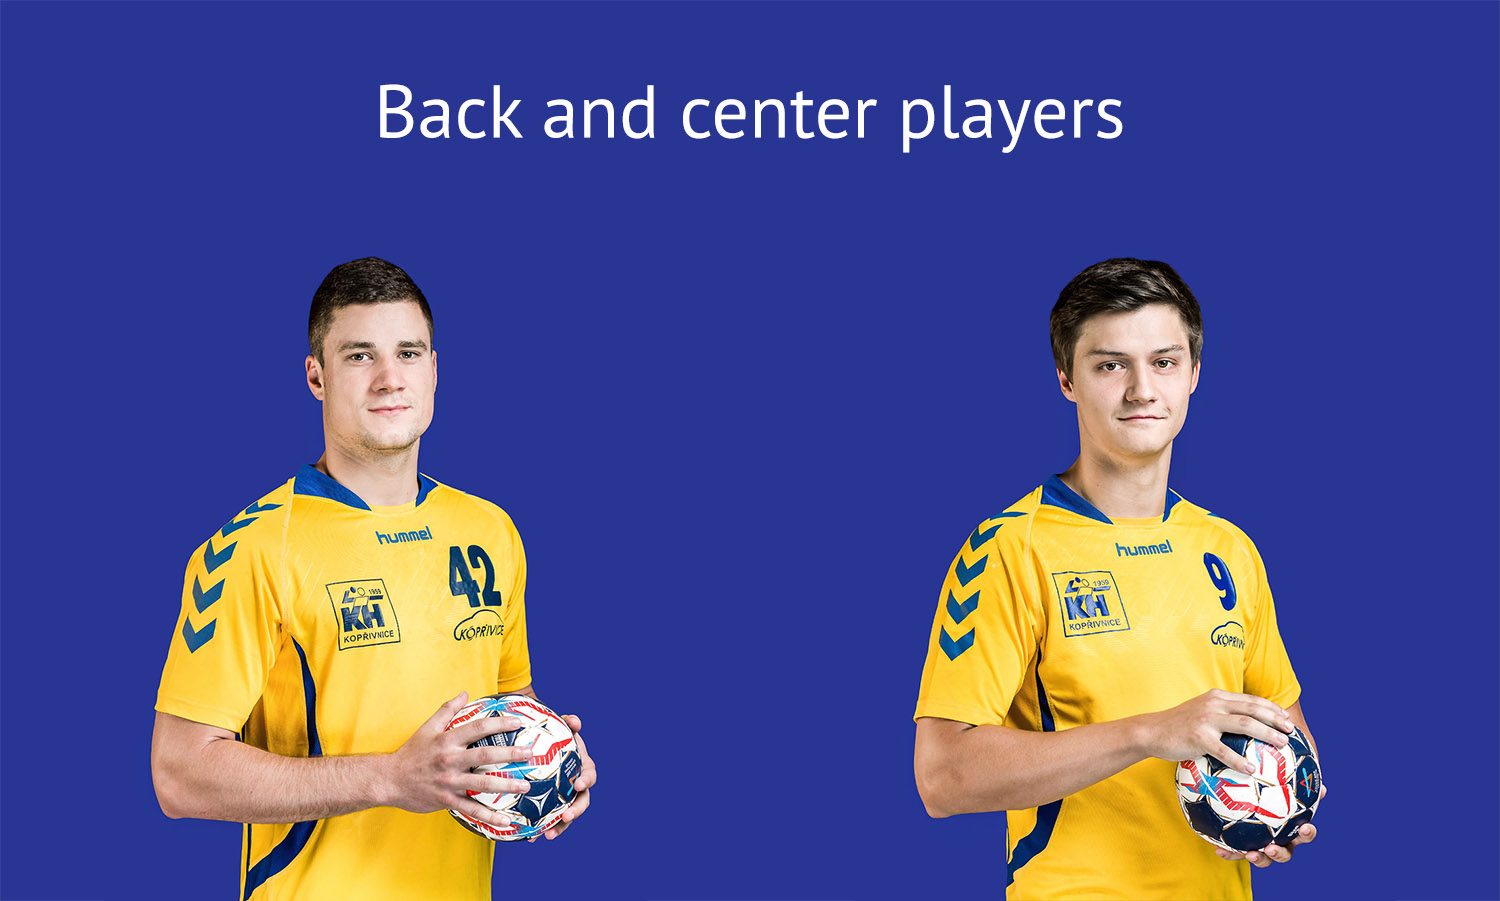 back_and_center_players_03.jpg